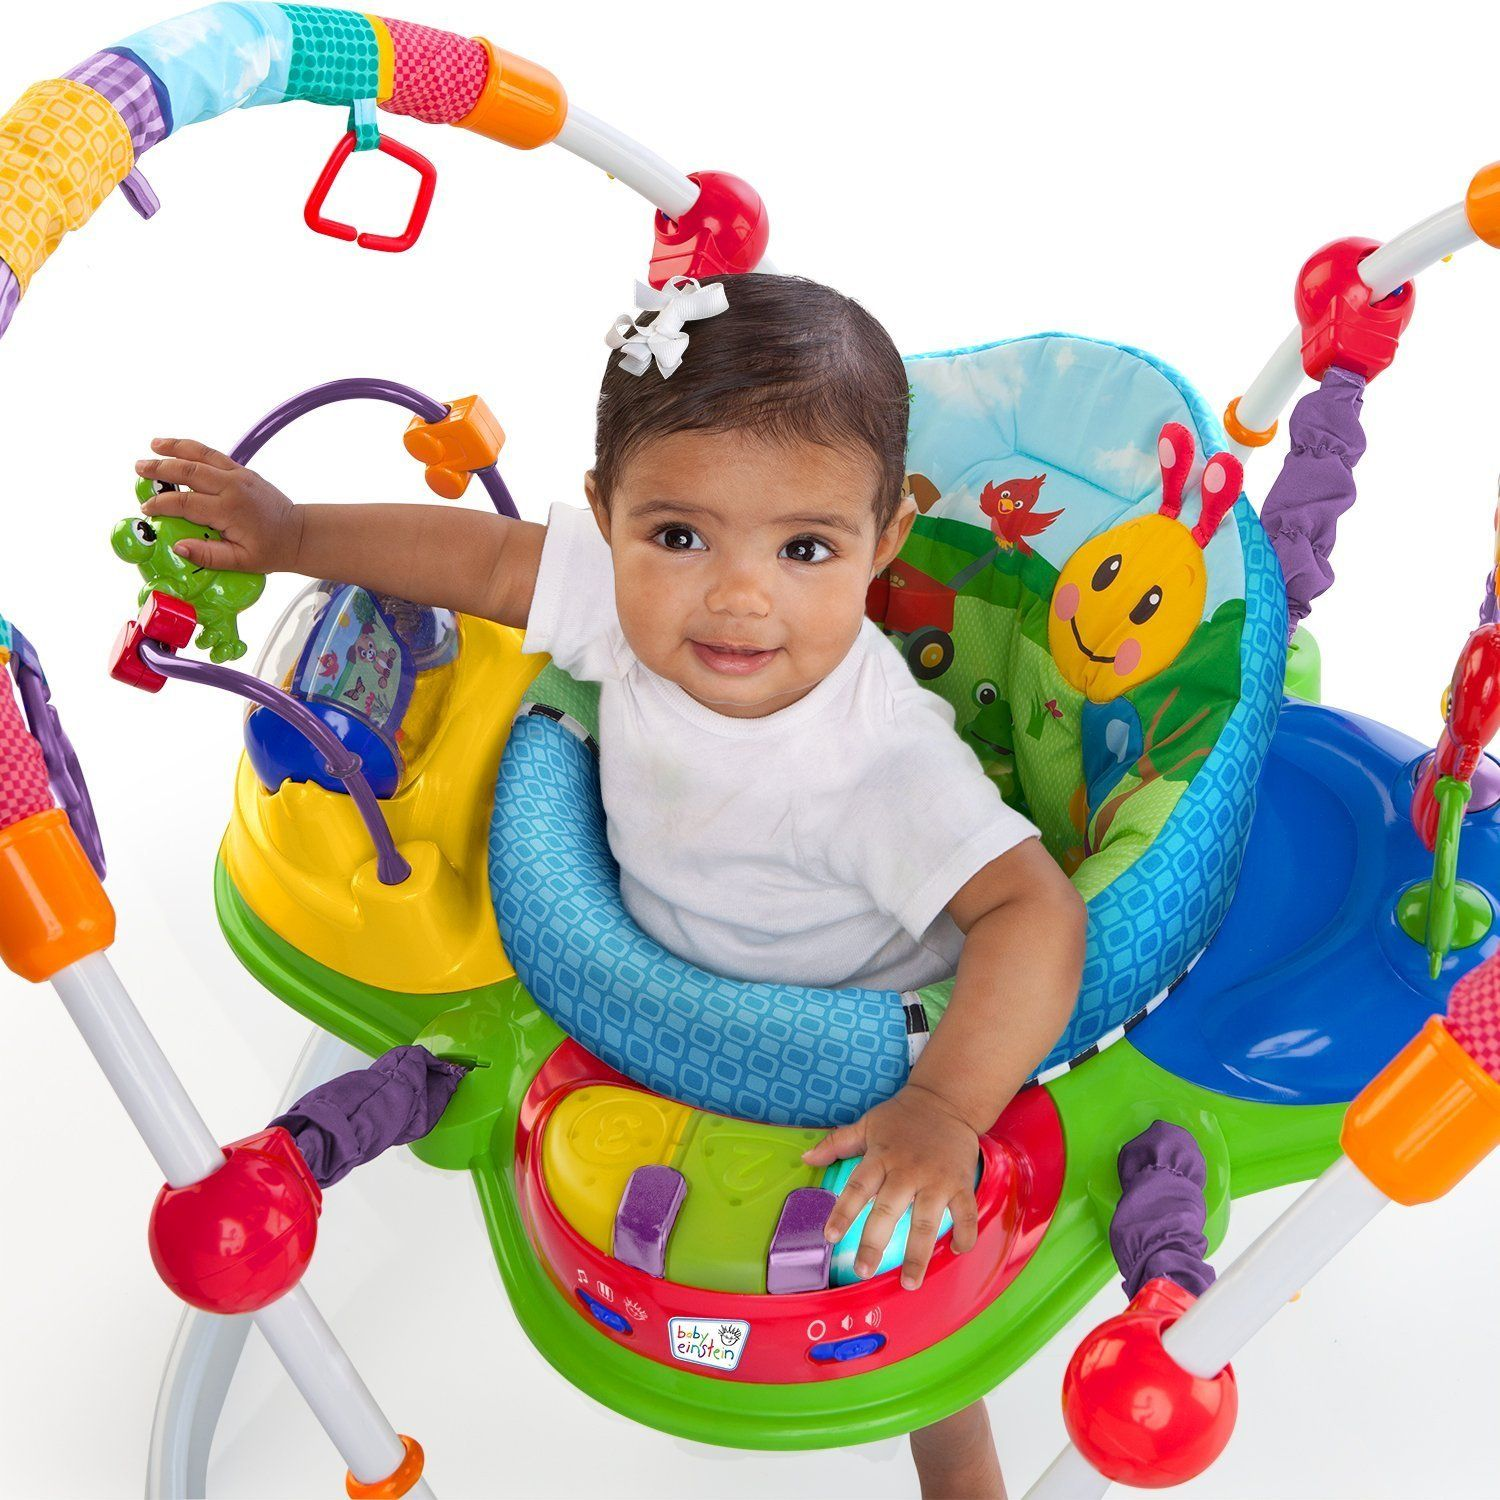 7c76f2c3b89 Baby Einstein Activity Jumper | Baby Things | Infant activities ...